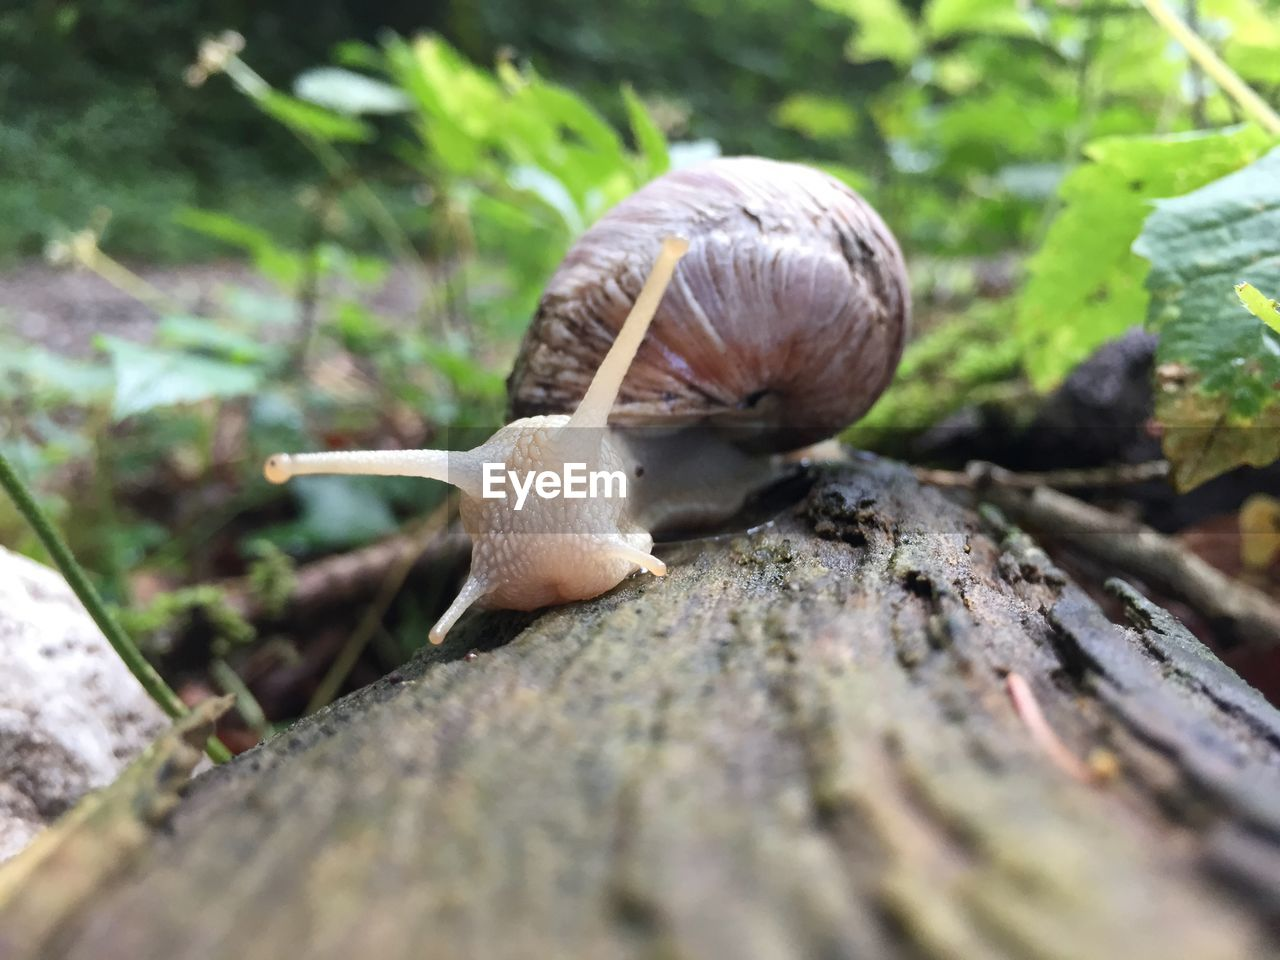 gastropod, animal, animal themes, mollusk, selective focus, one animal, snail, animal wildlife, animals in the wild, close-up, invertebrate, shell, day, no people, nature, animal antenna, animal body part, animal shell, slimy, plant, crawling, surface level, toadstool